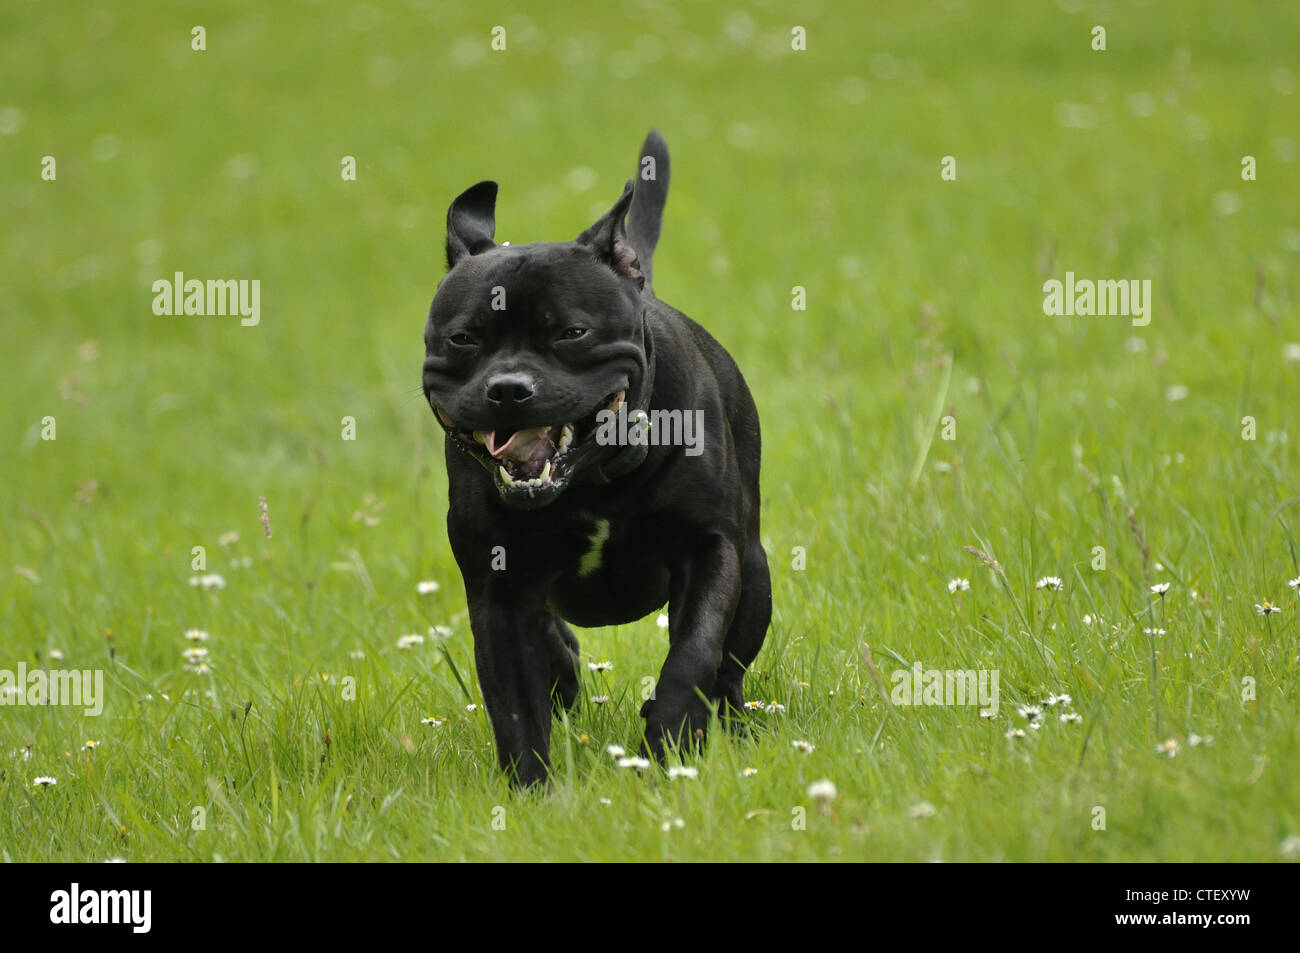 Staffordshire Bull Terrier running through grass towards camera - Stock Image